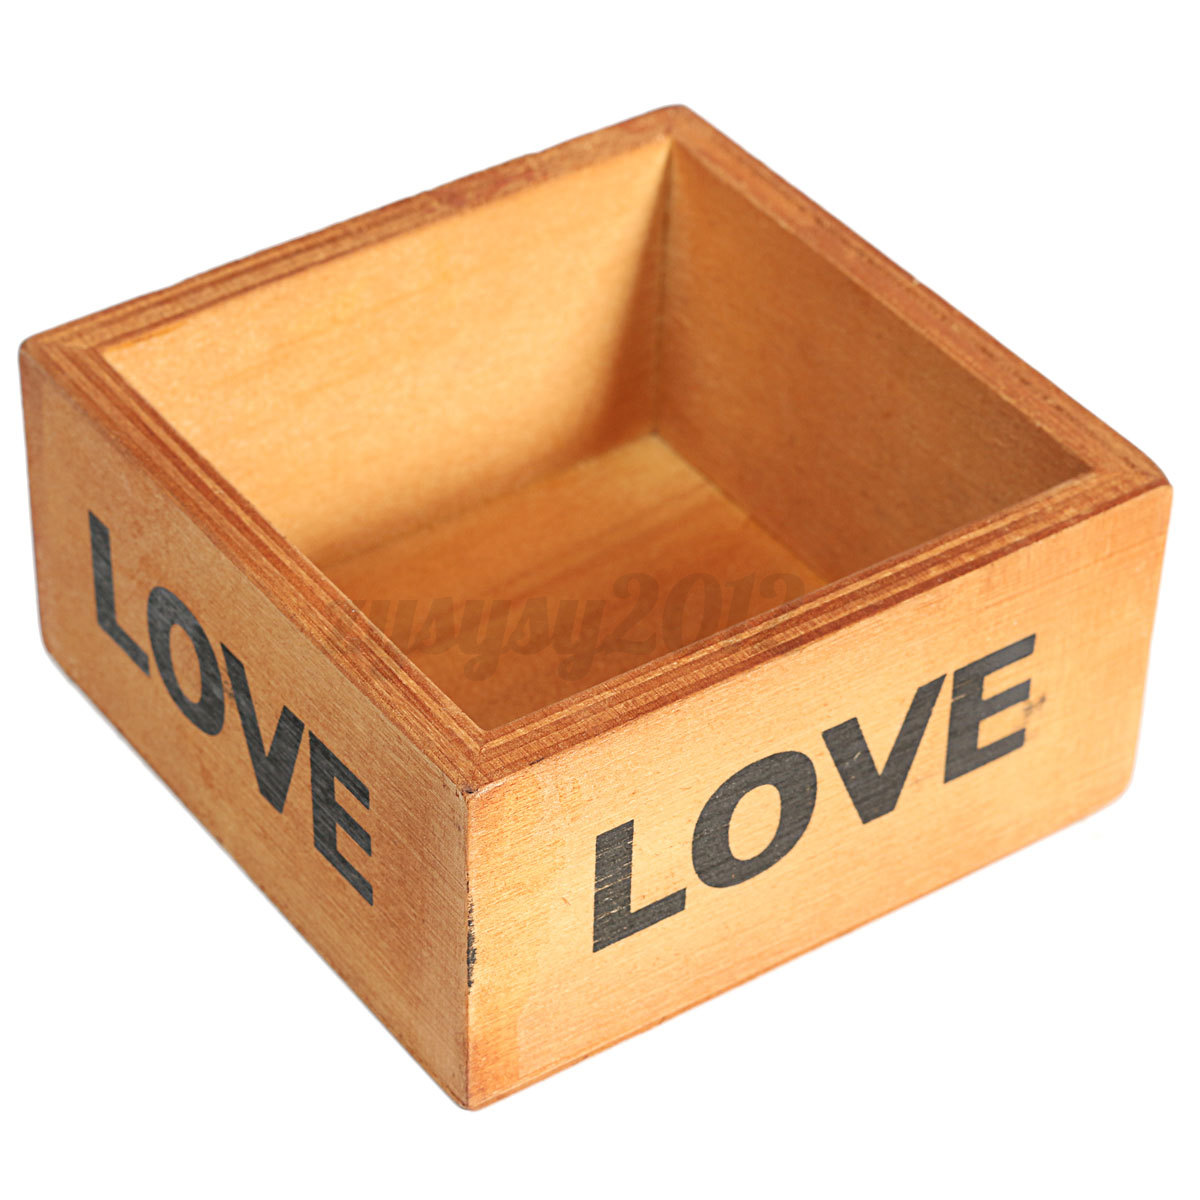 Wooden Desktop Stationery Flower Pot Debris Storage Case